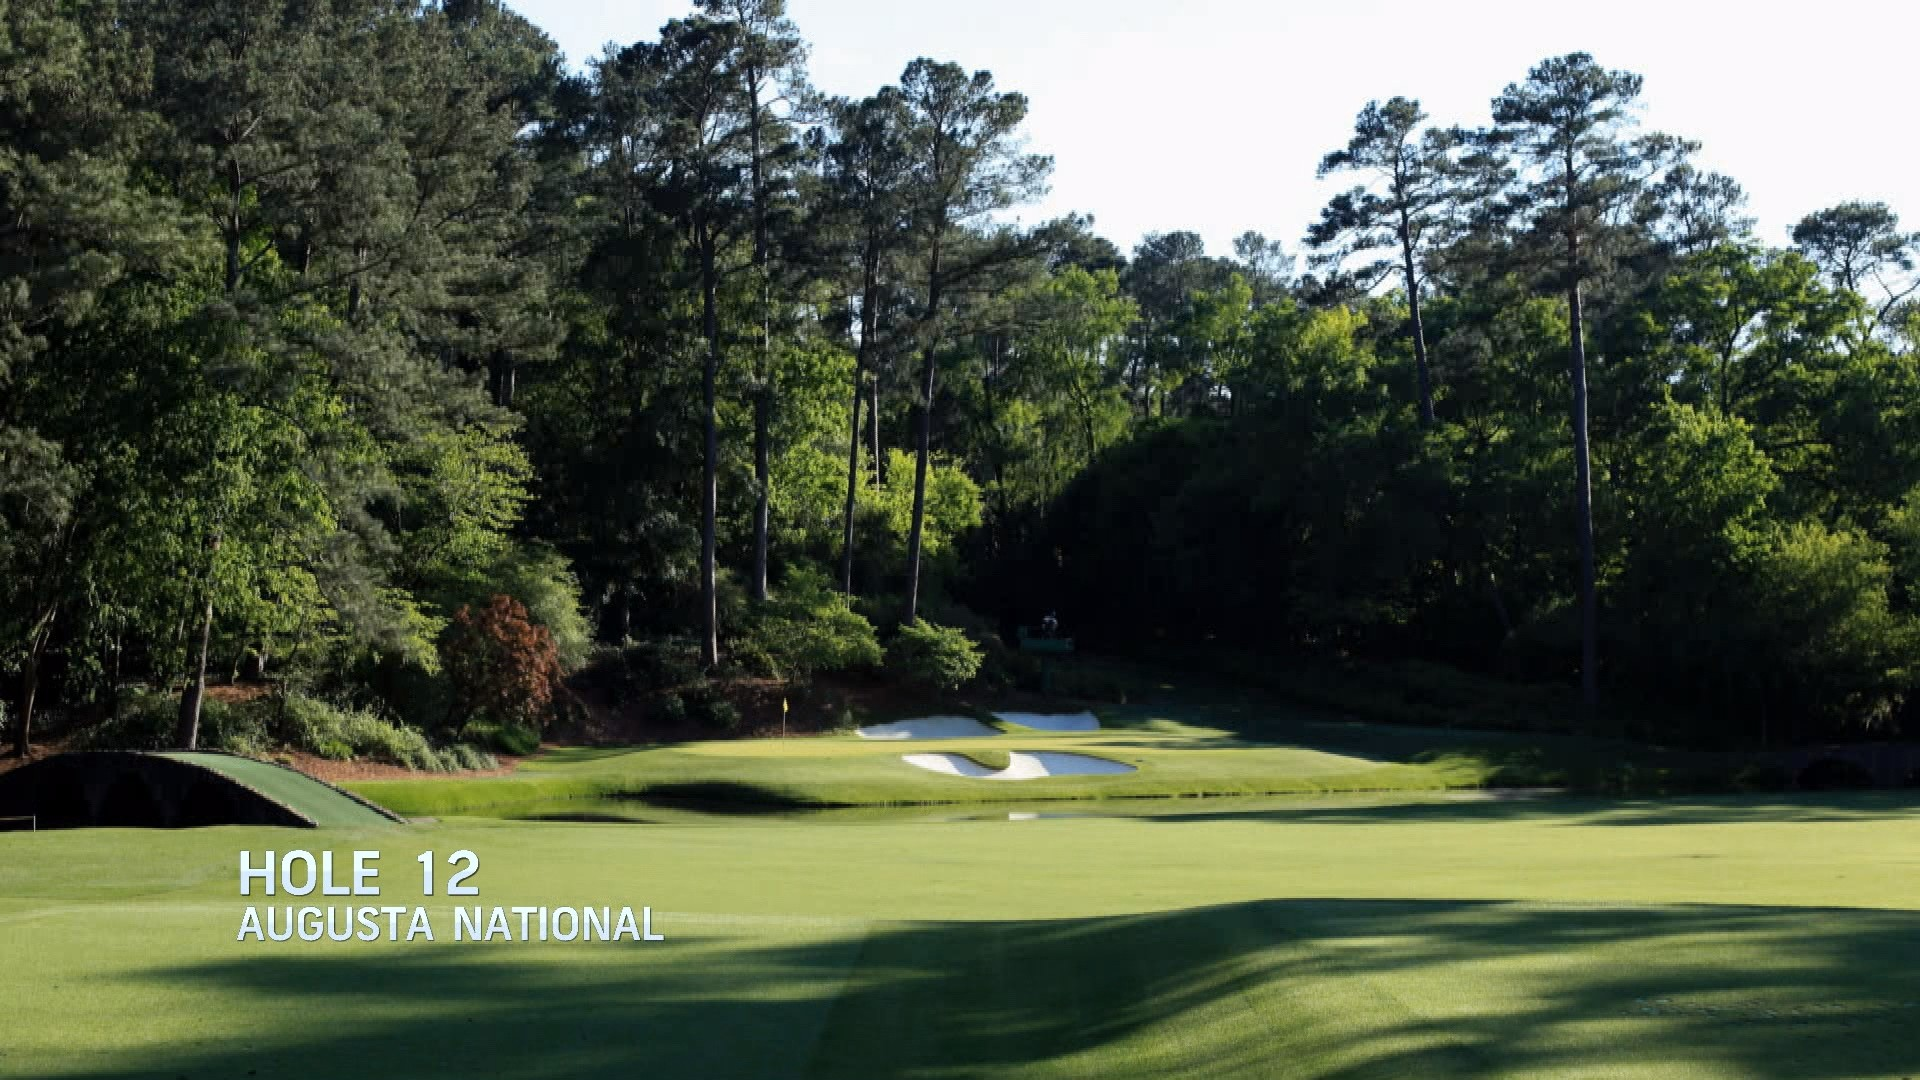 Triple terrors: No. 12 and other great par 3s